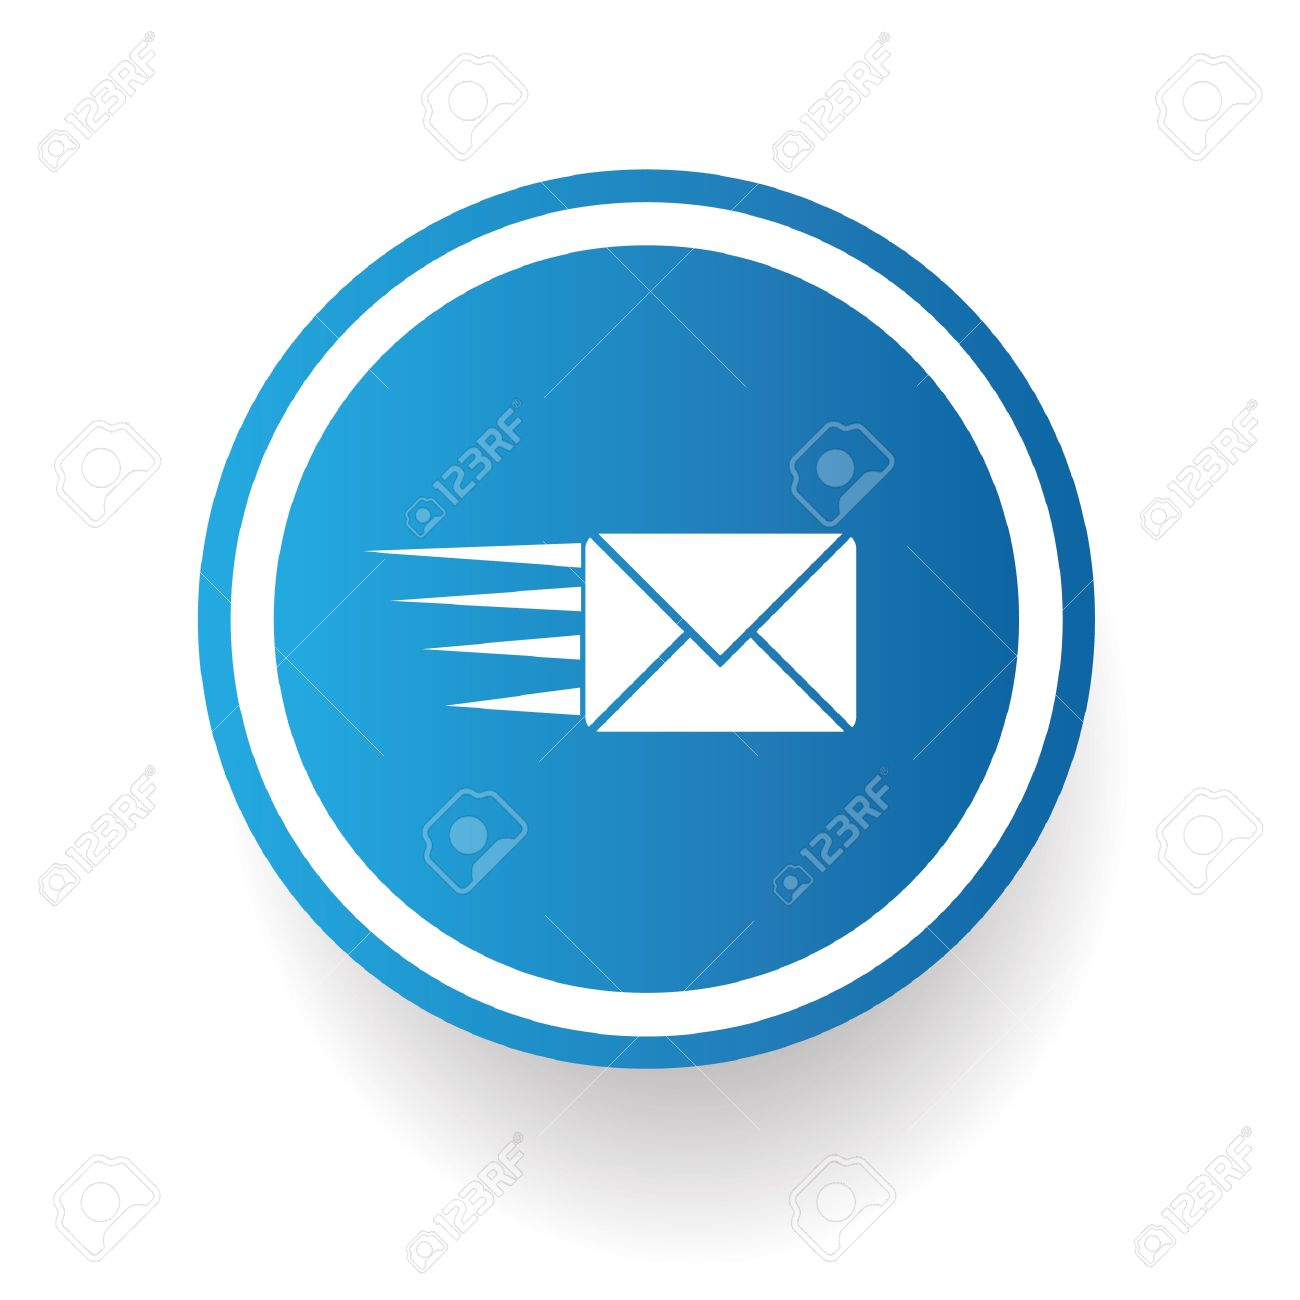 Send email symbol Stock Vector - 20836158